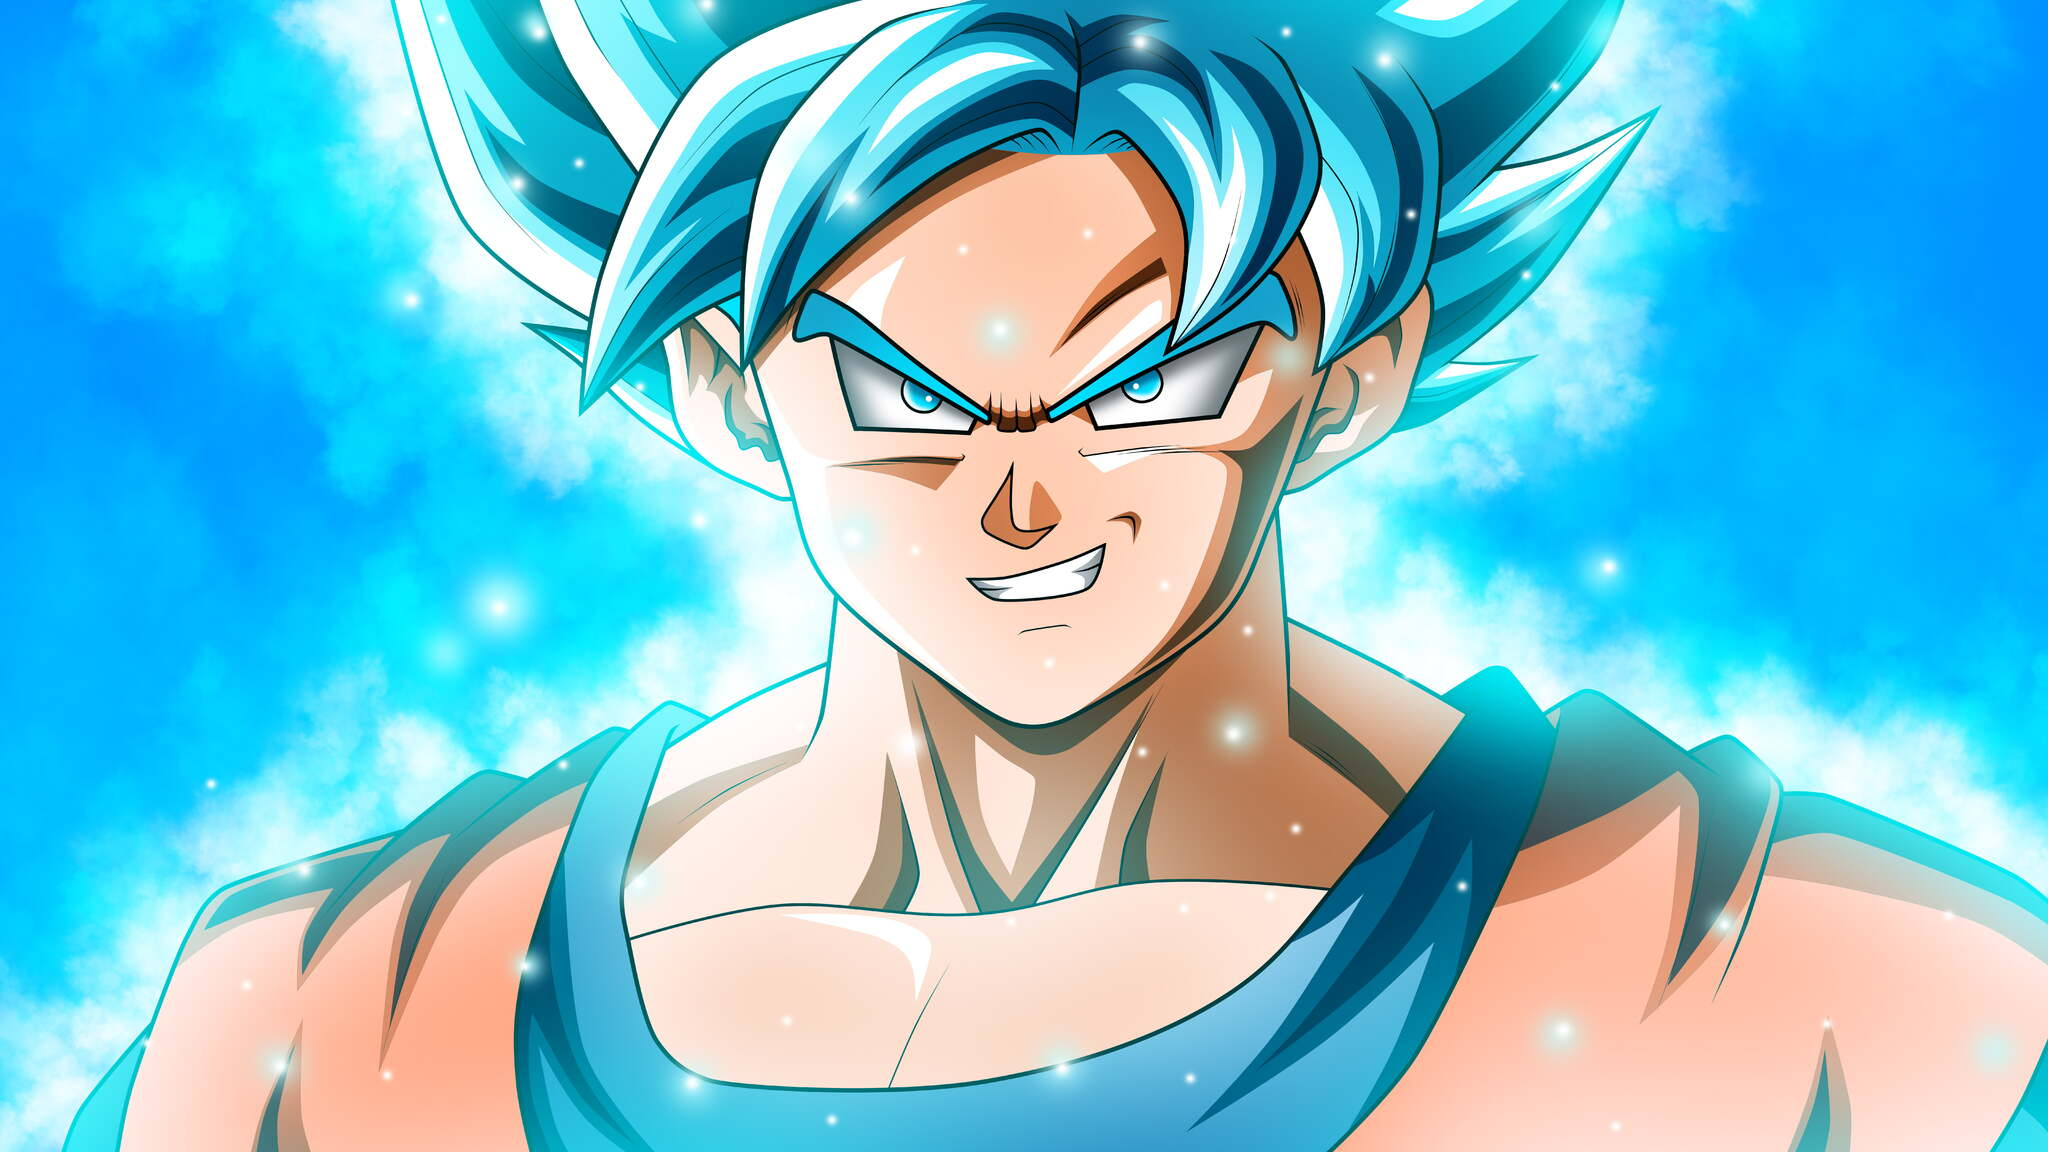 son-goku-dragon-ball-super-12k-qe.jpg